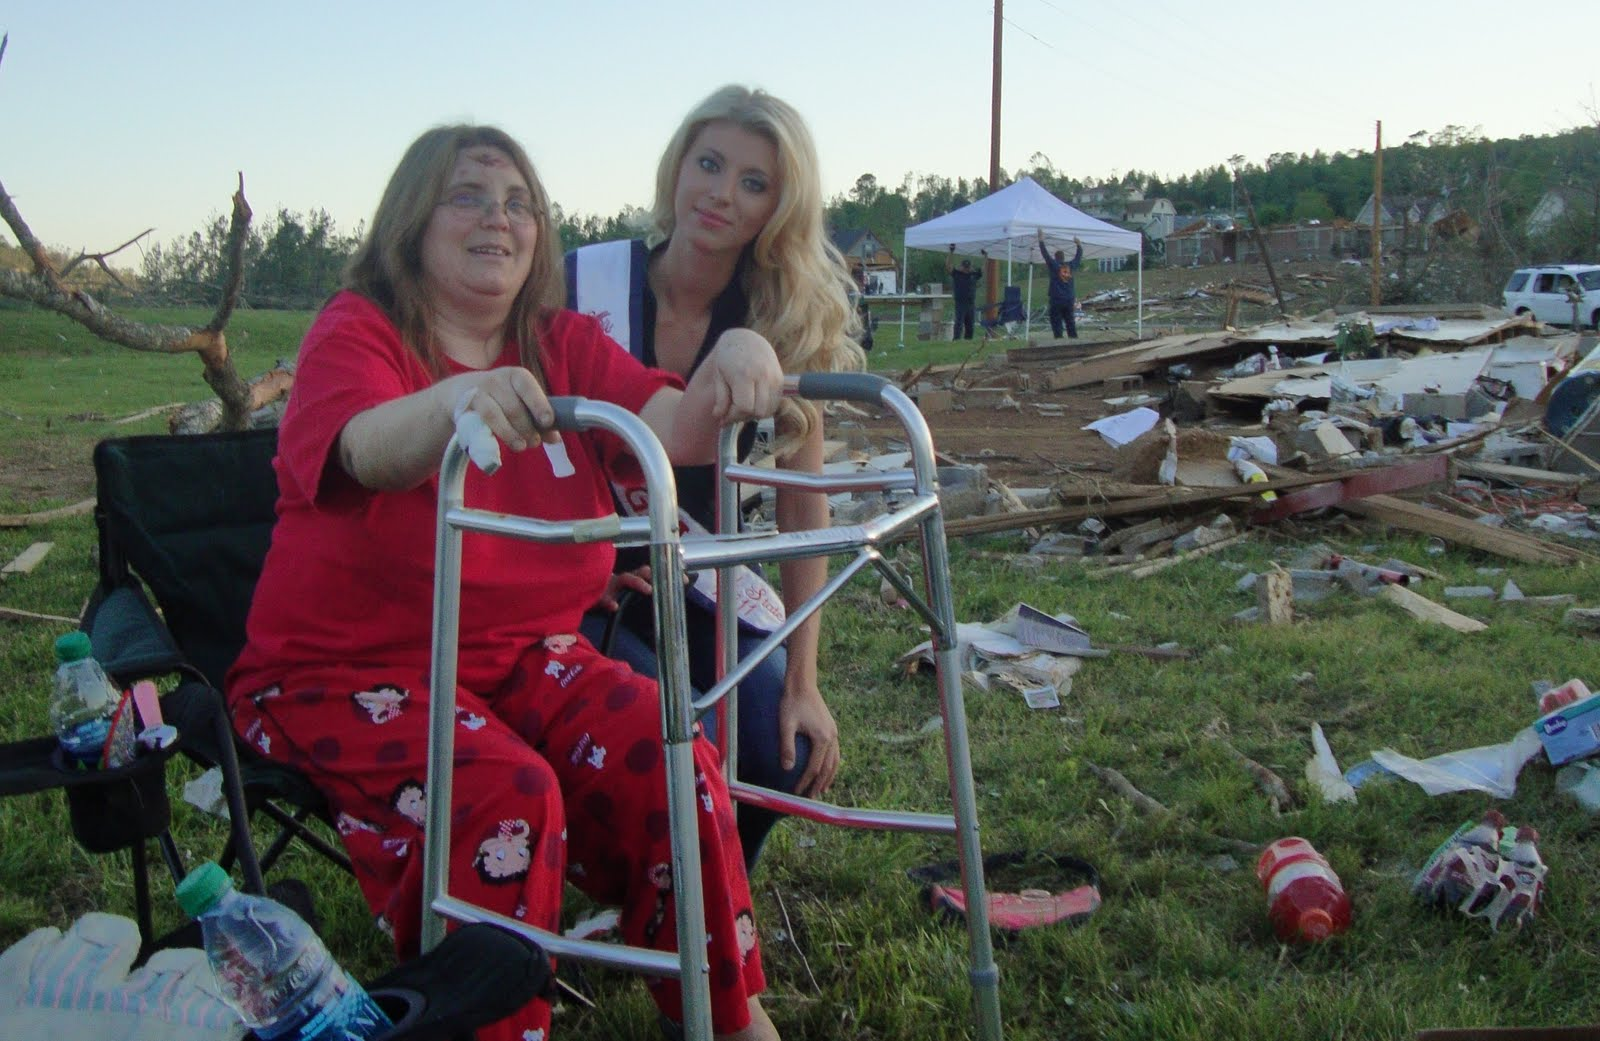 Ringgold (GA) United States  city photo : Miss Georgia United States 2011: Tornado Disaster Ringgold, GA My ...